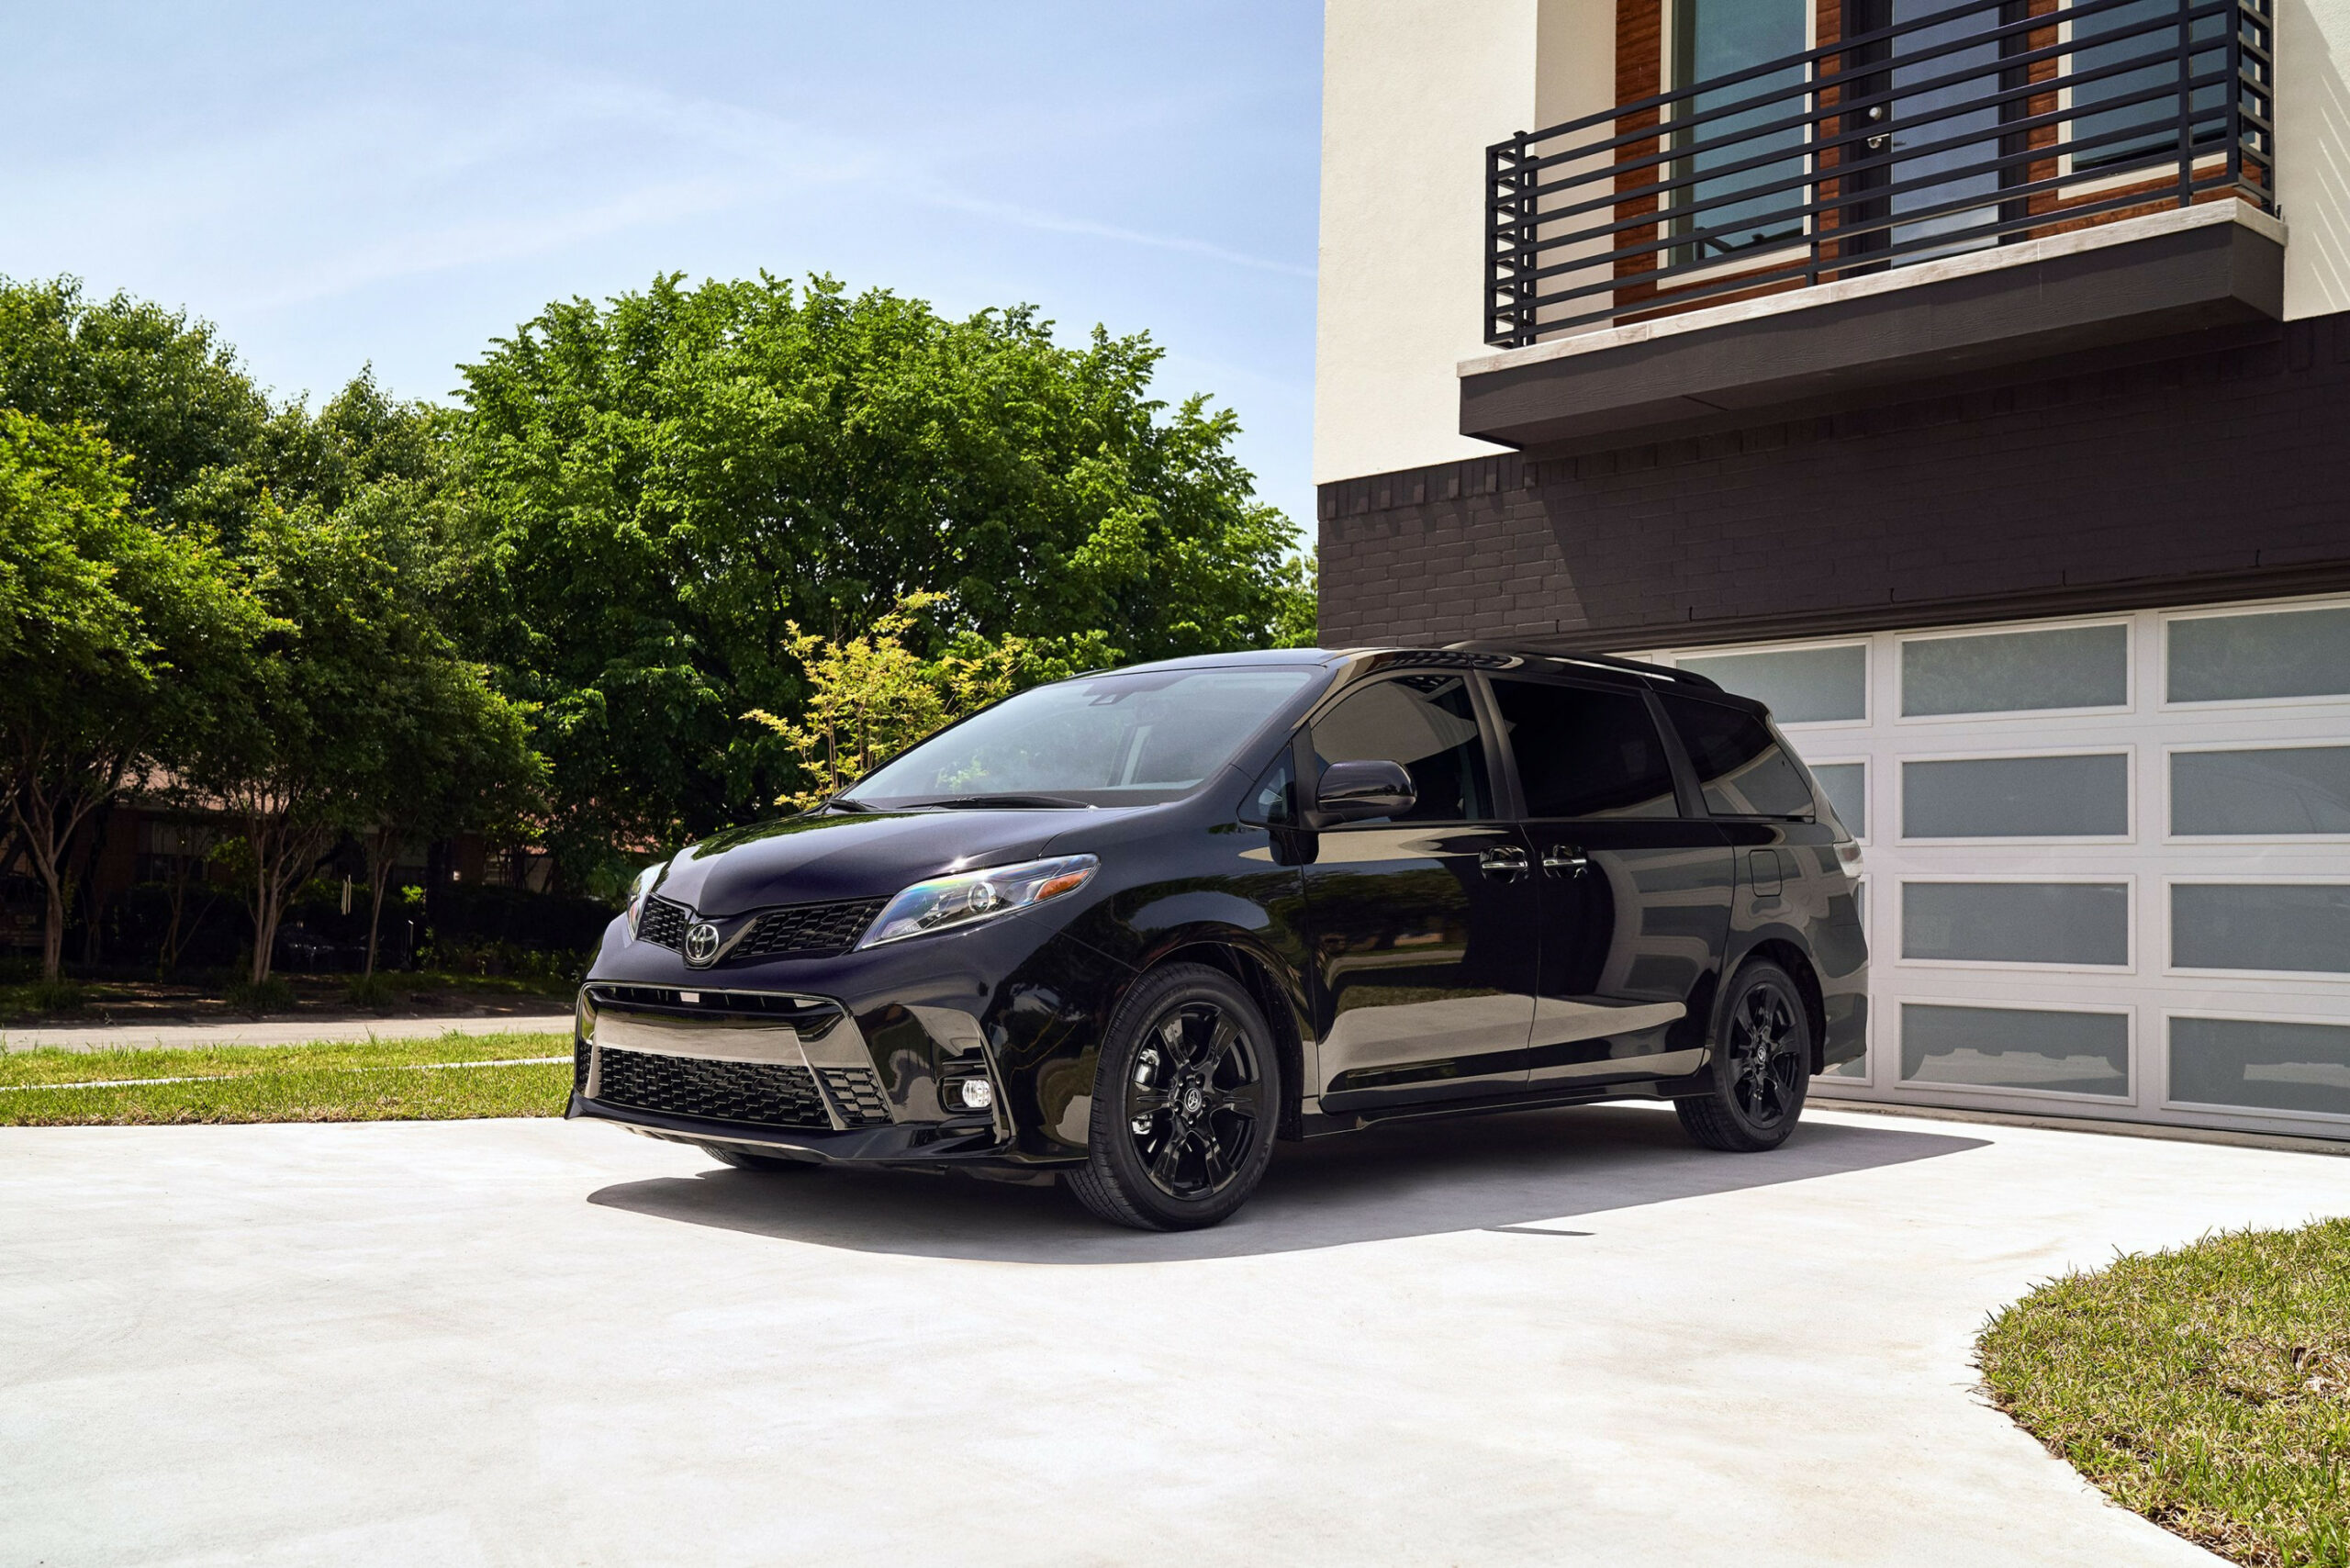 10 Toyota Sienna Review, Pricing, and Specs - toyota minivan 2020